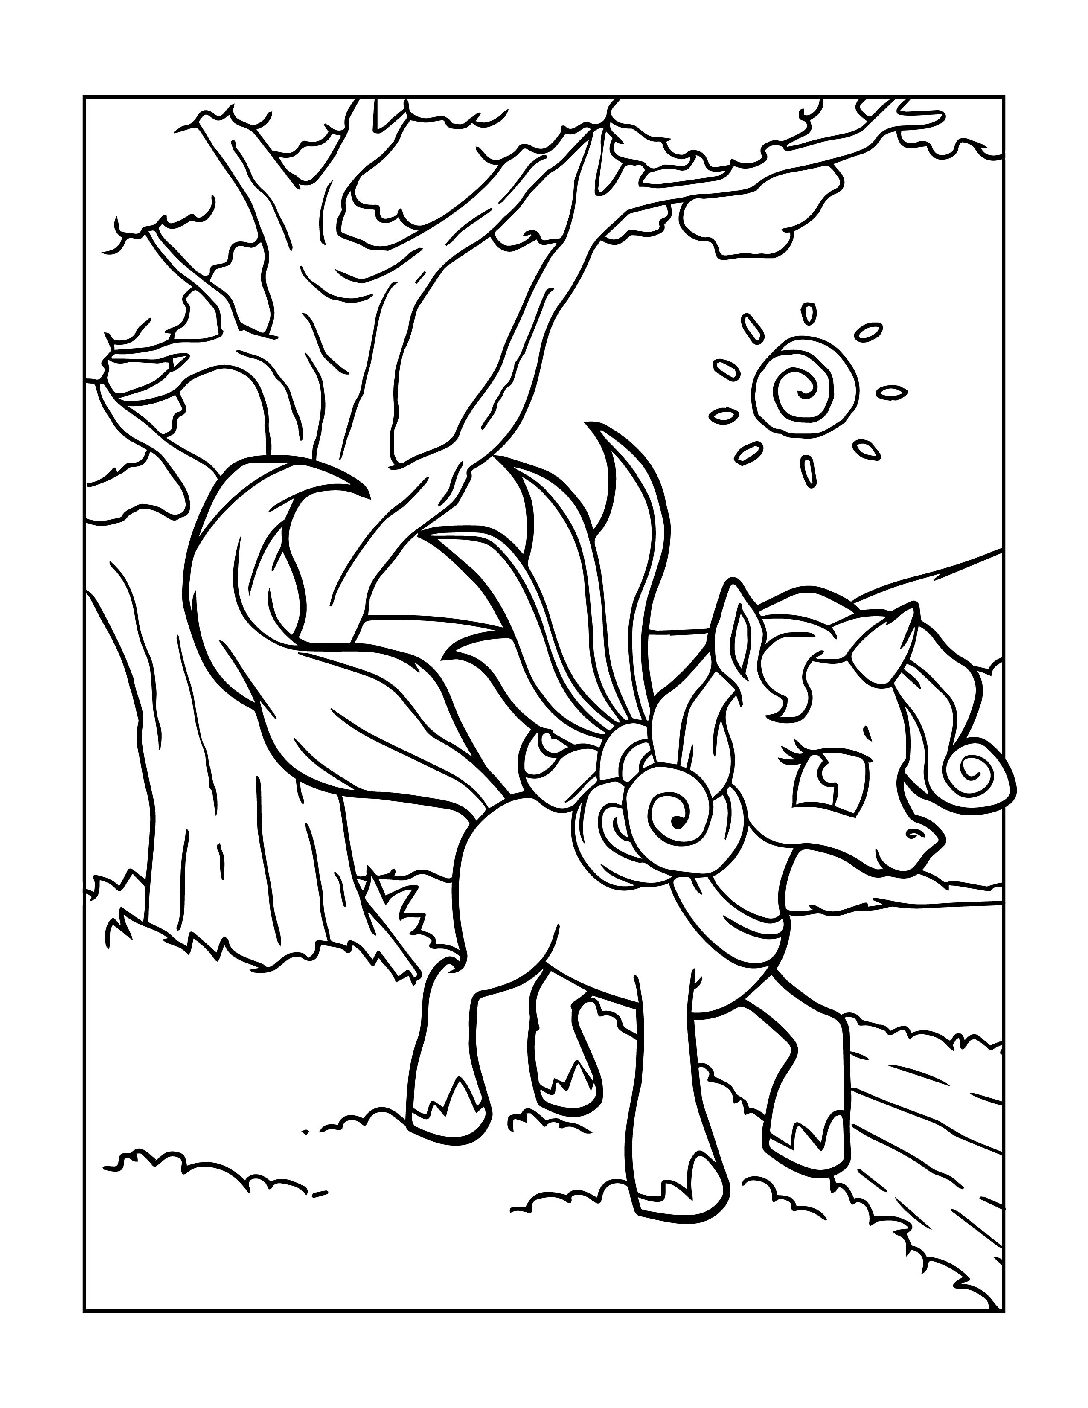 Coloring-Pages-Unicorns-6-pdf Free Printable Unicorn Colouring Pages